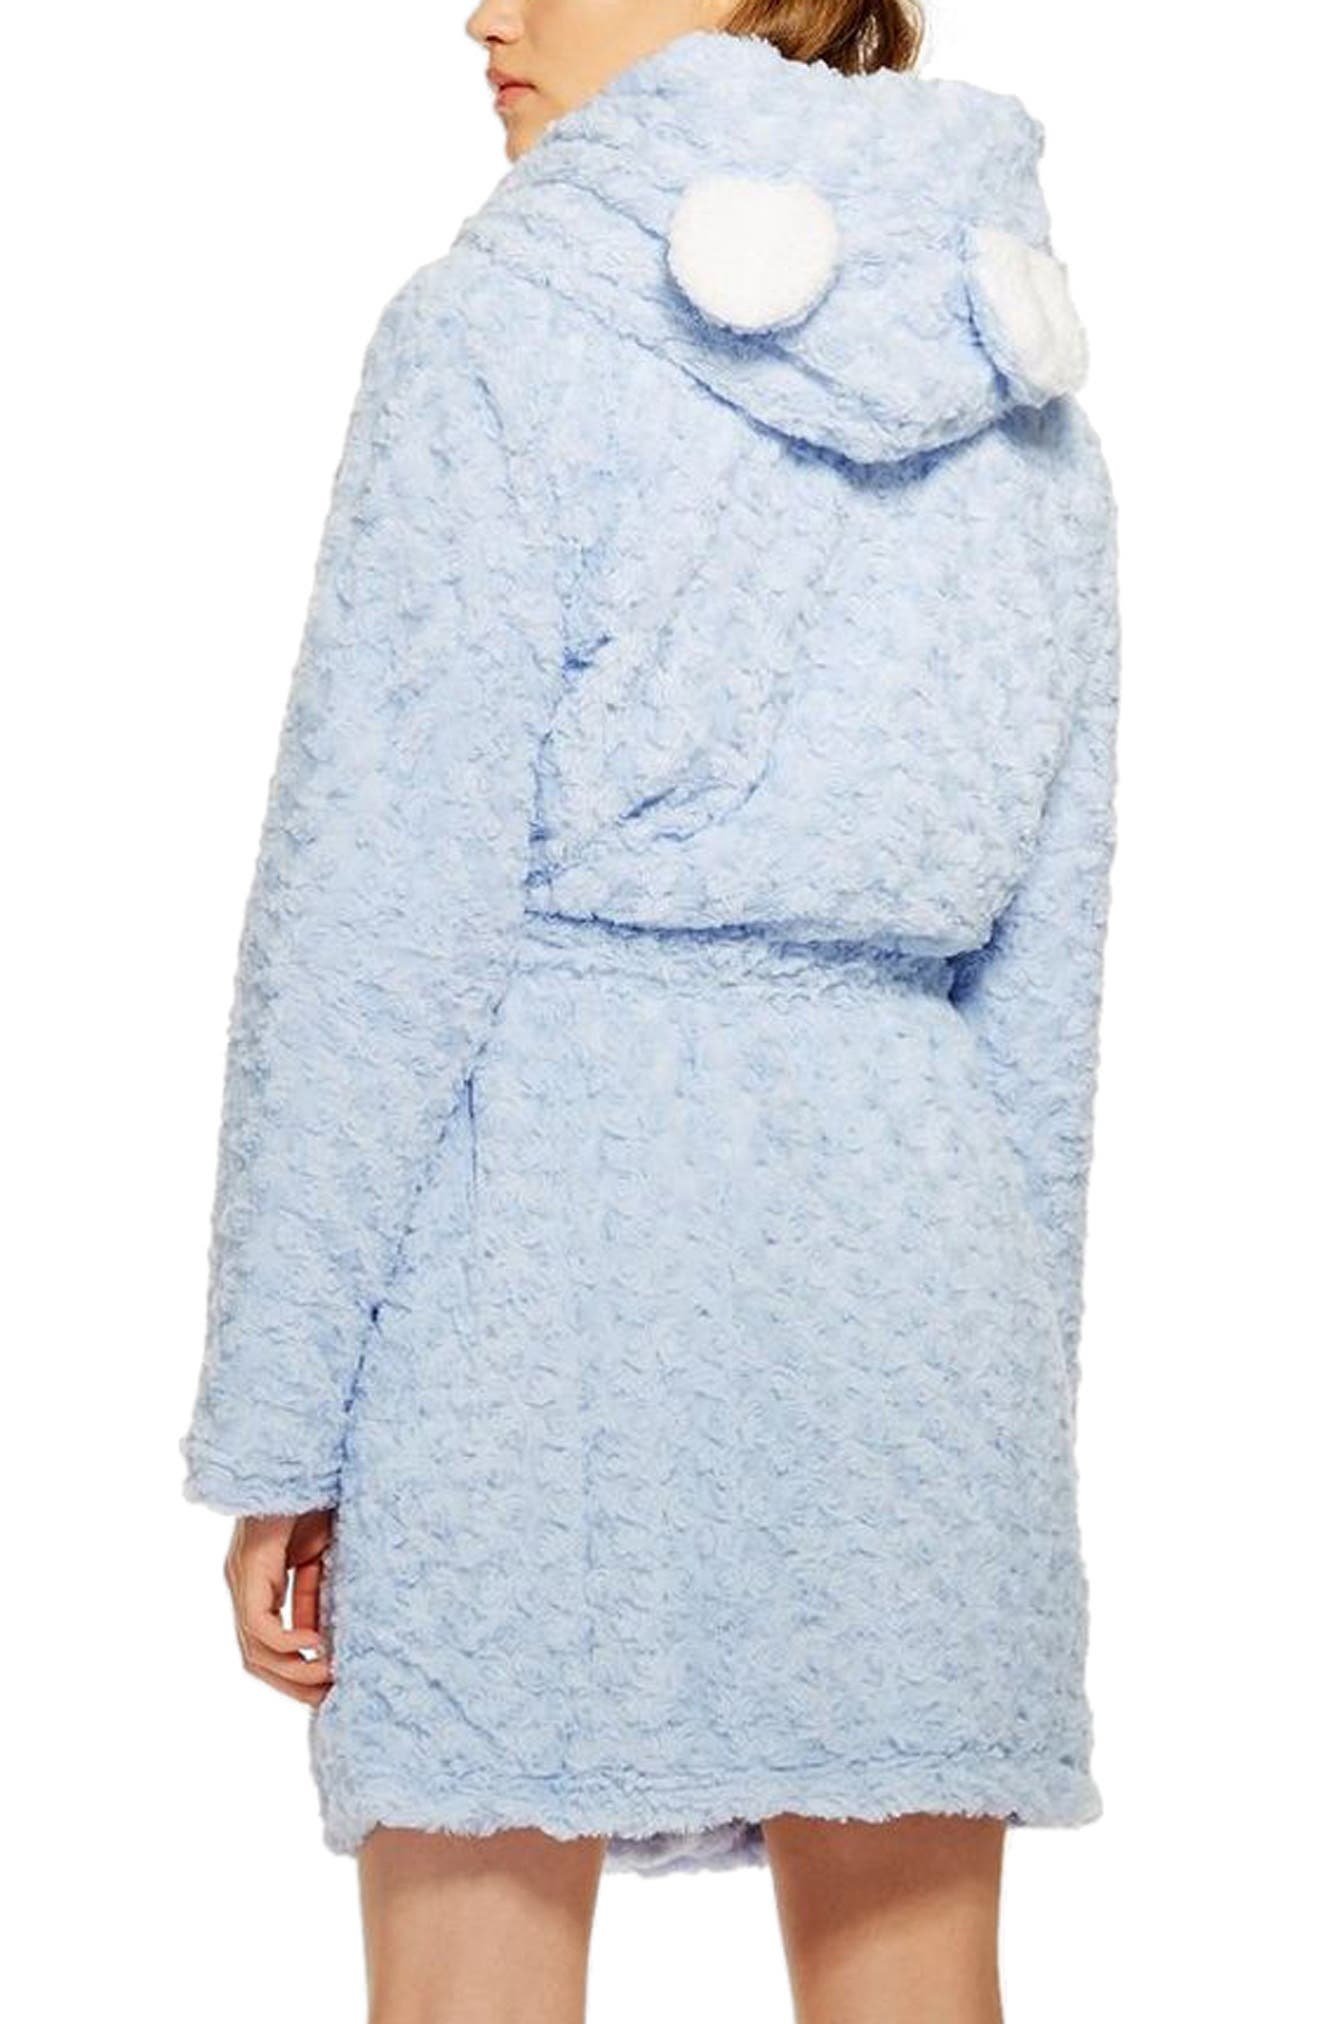 Fluffy Faux Fur Hooded Robe,                             Alternate thumbnail 2, color,                             LIGHT BLUE